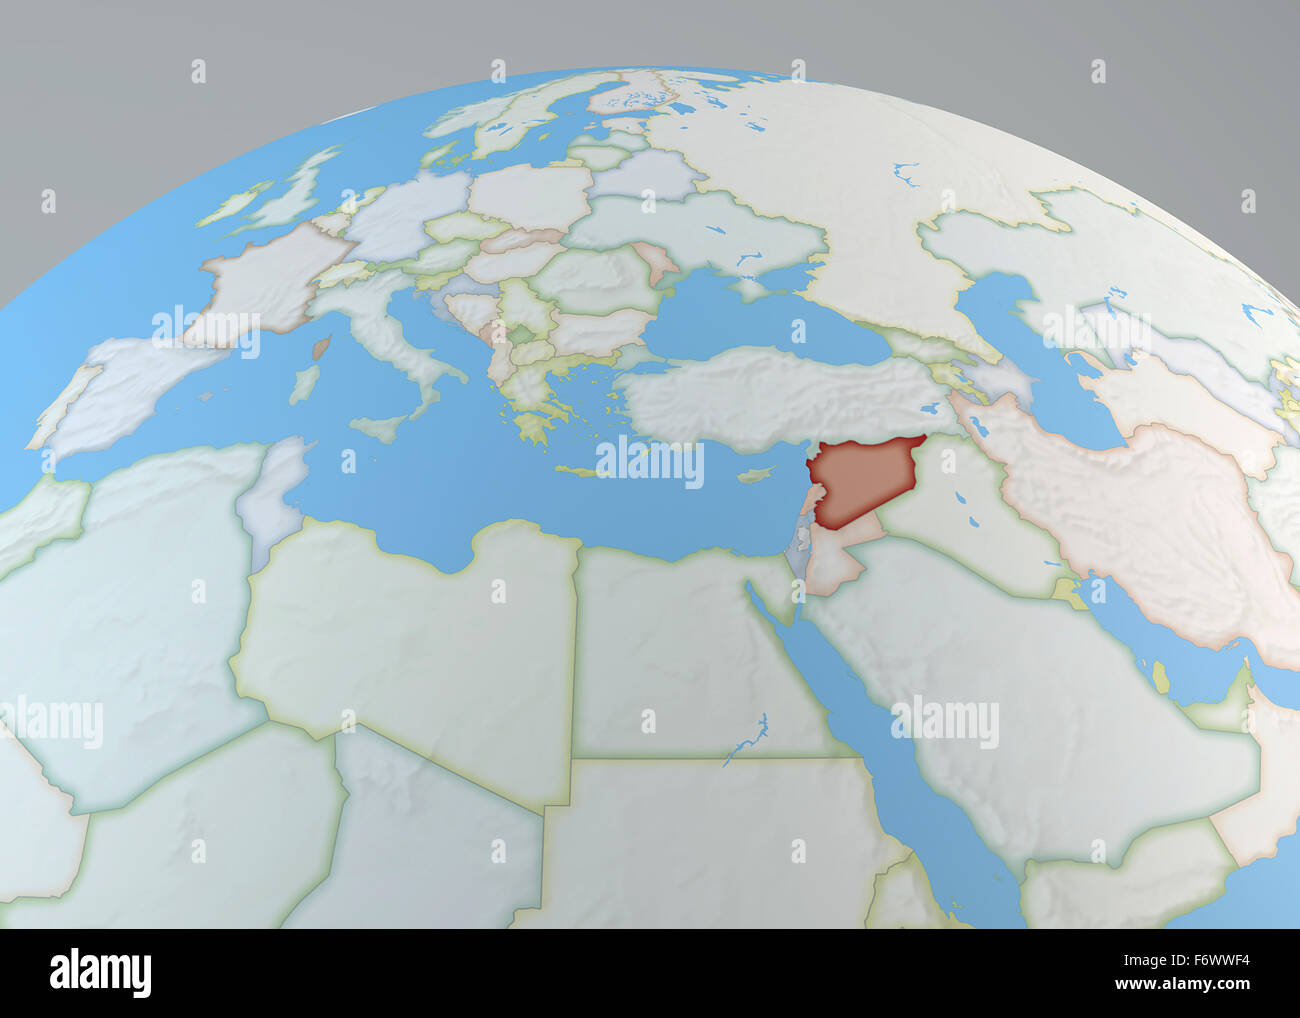 World map of Middle East with Syria highlighted north Africa and